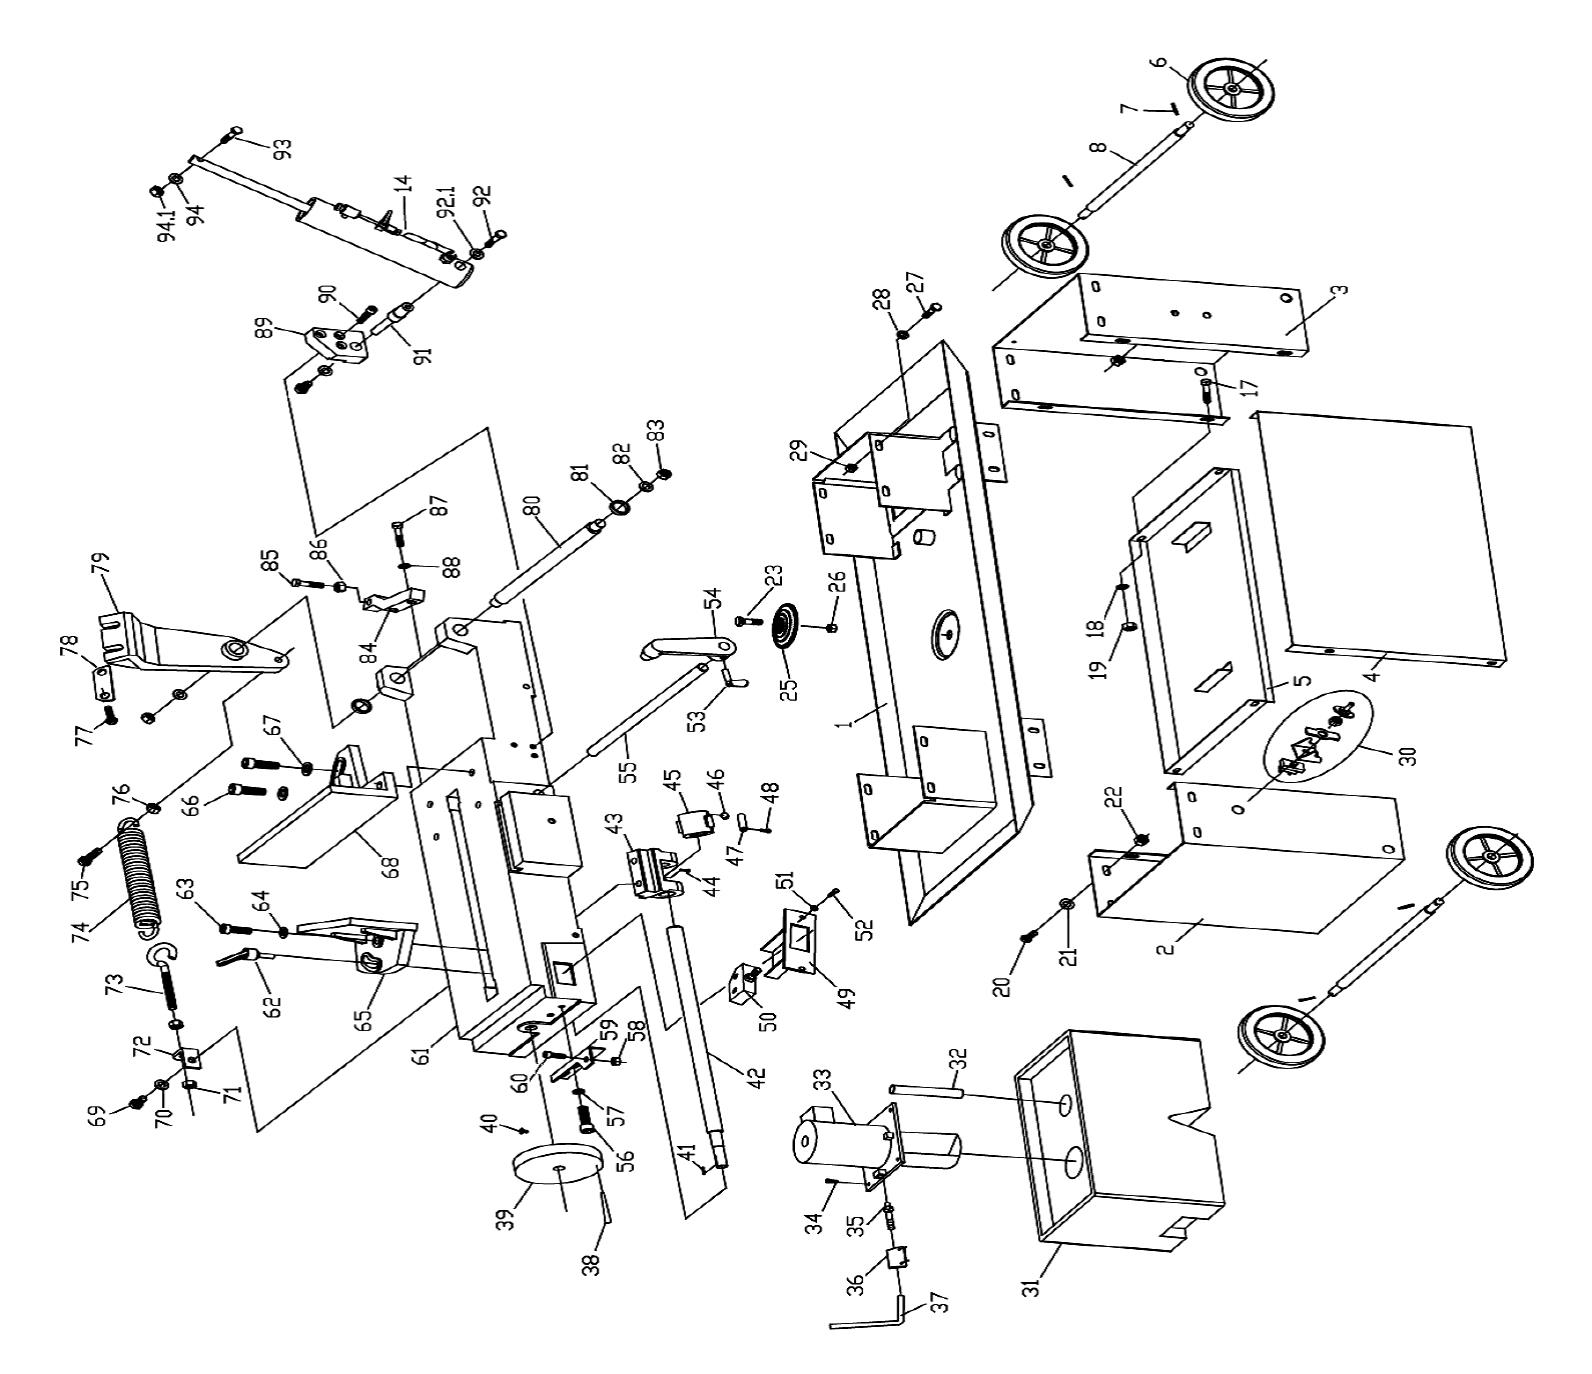 Sip 12 Metal Cutting Bandsaw Diagram